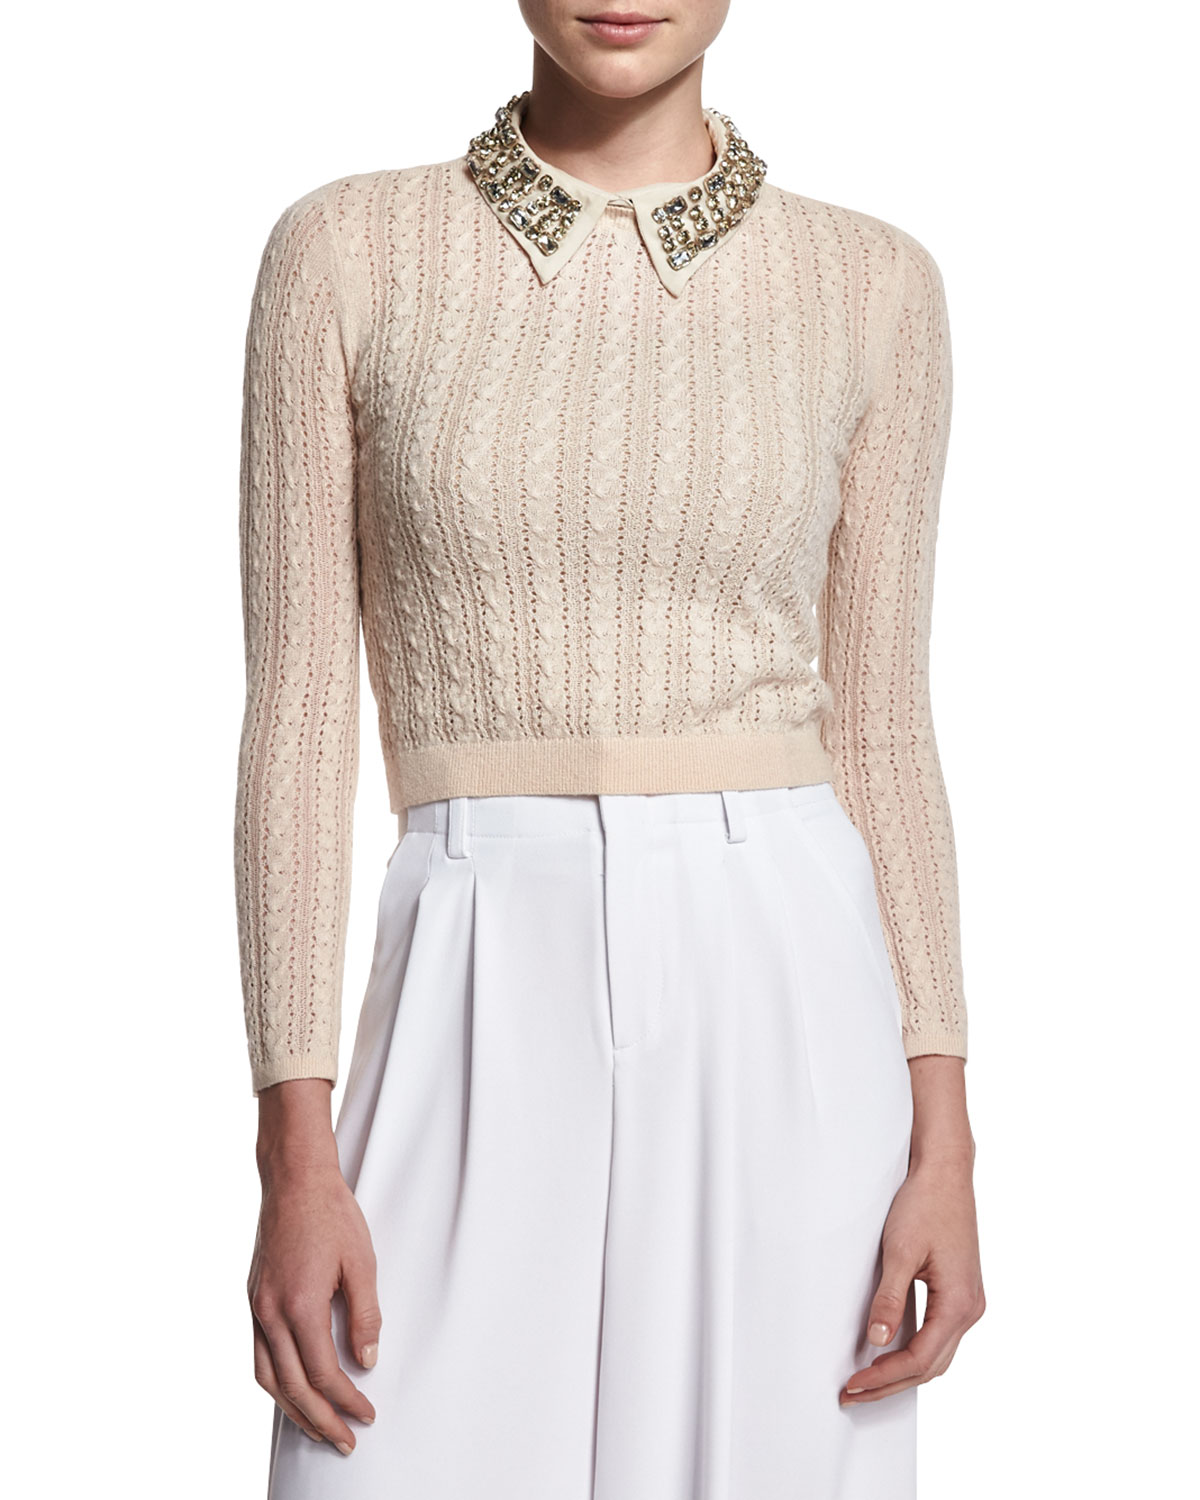 Alice + Olivia Tamsin Cropped Cable-Knit Sweater, Tan, Size: XS